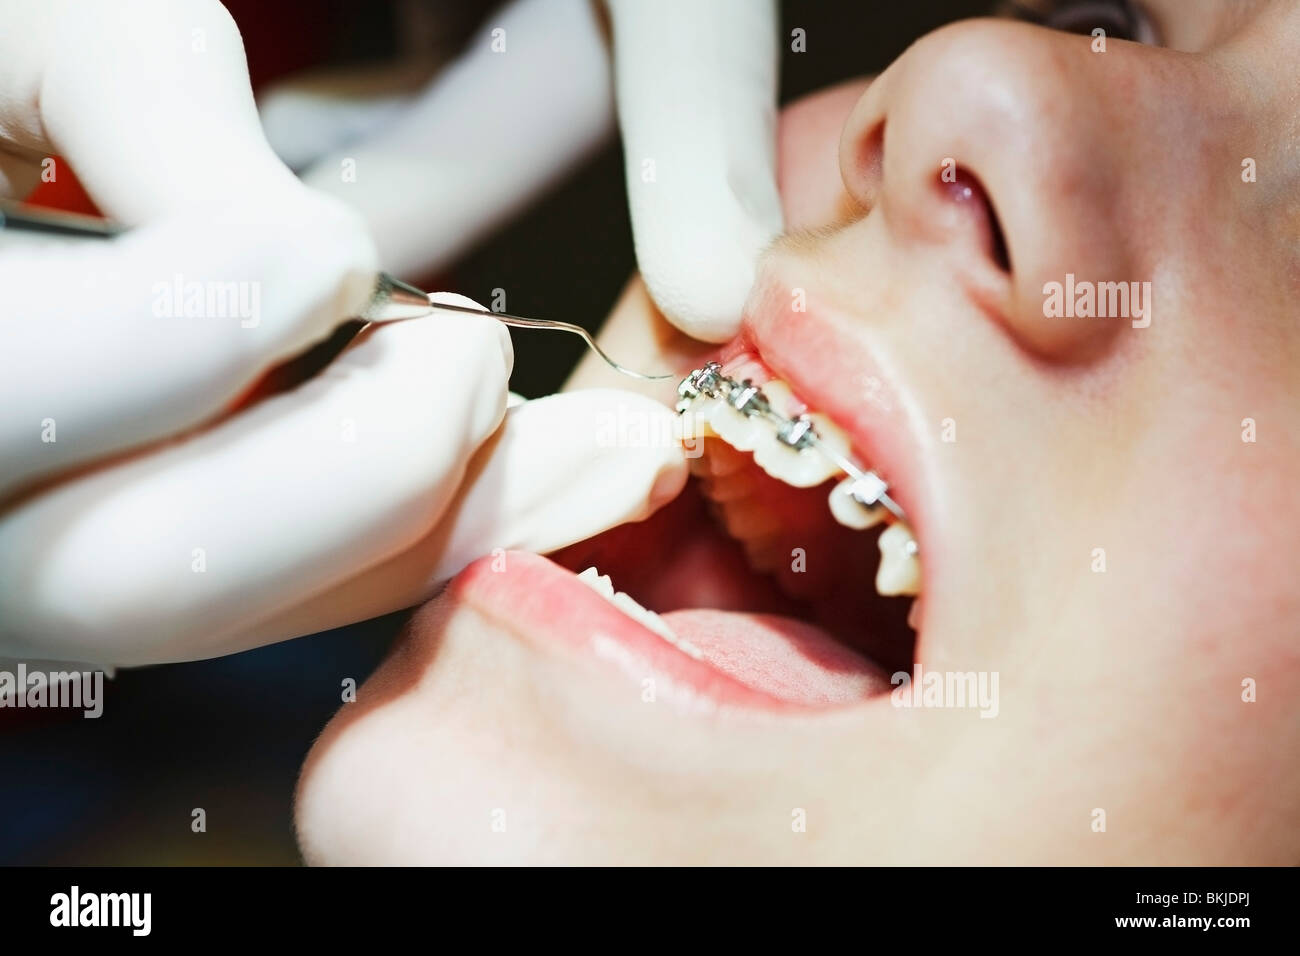 A Teenager With Braces Having Their Mouth Examined By The Dentist - Stock Image